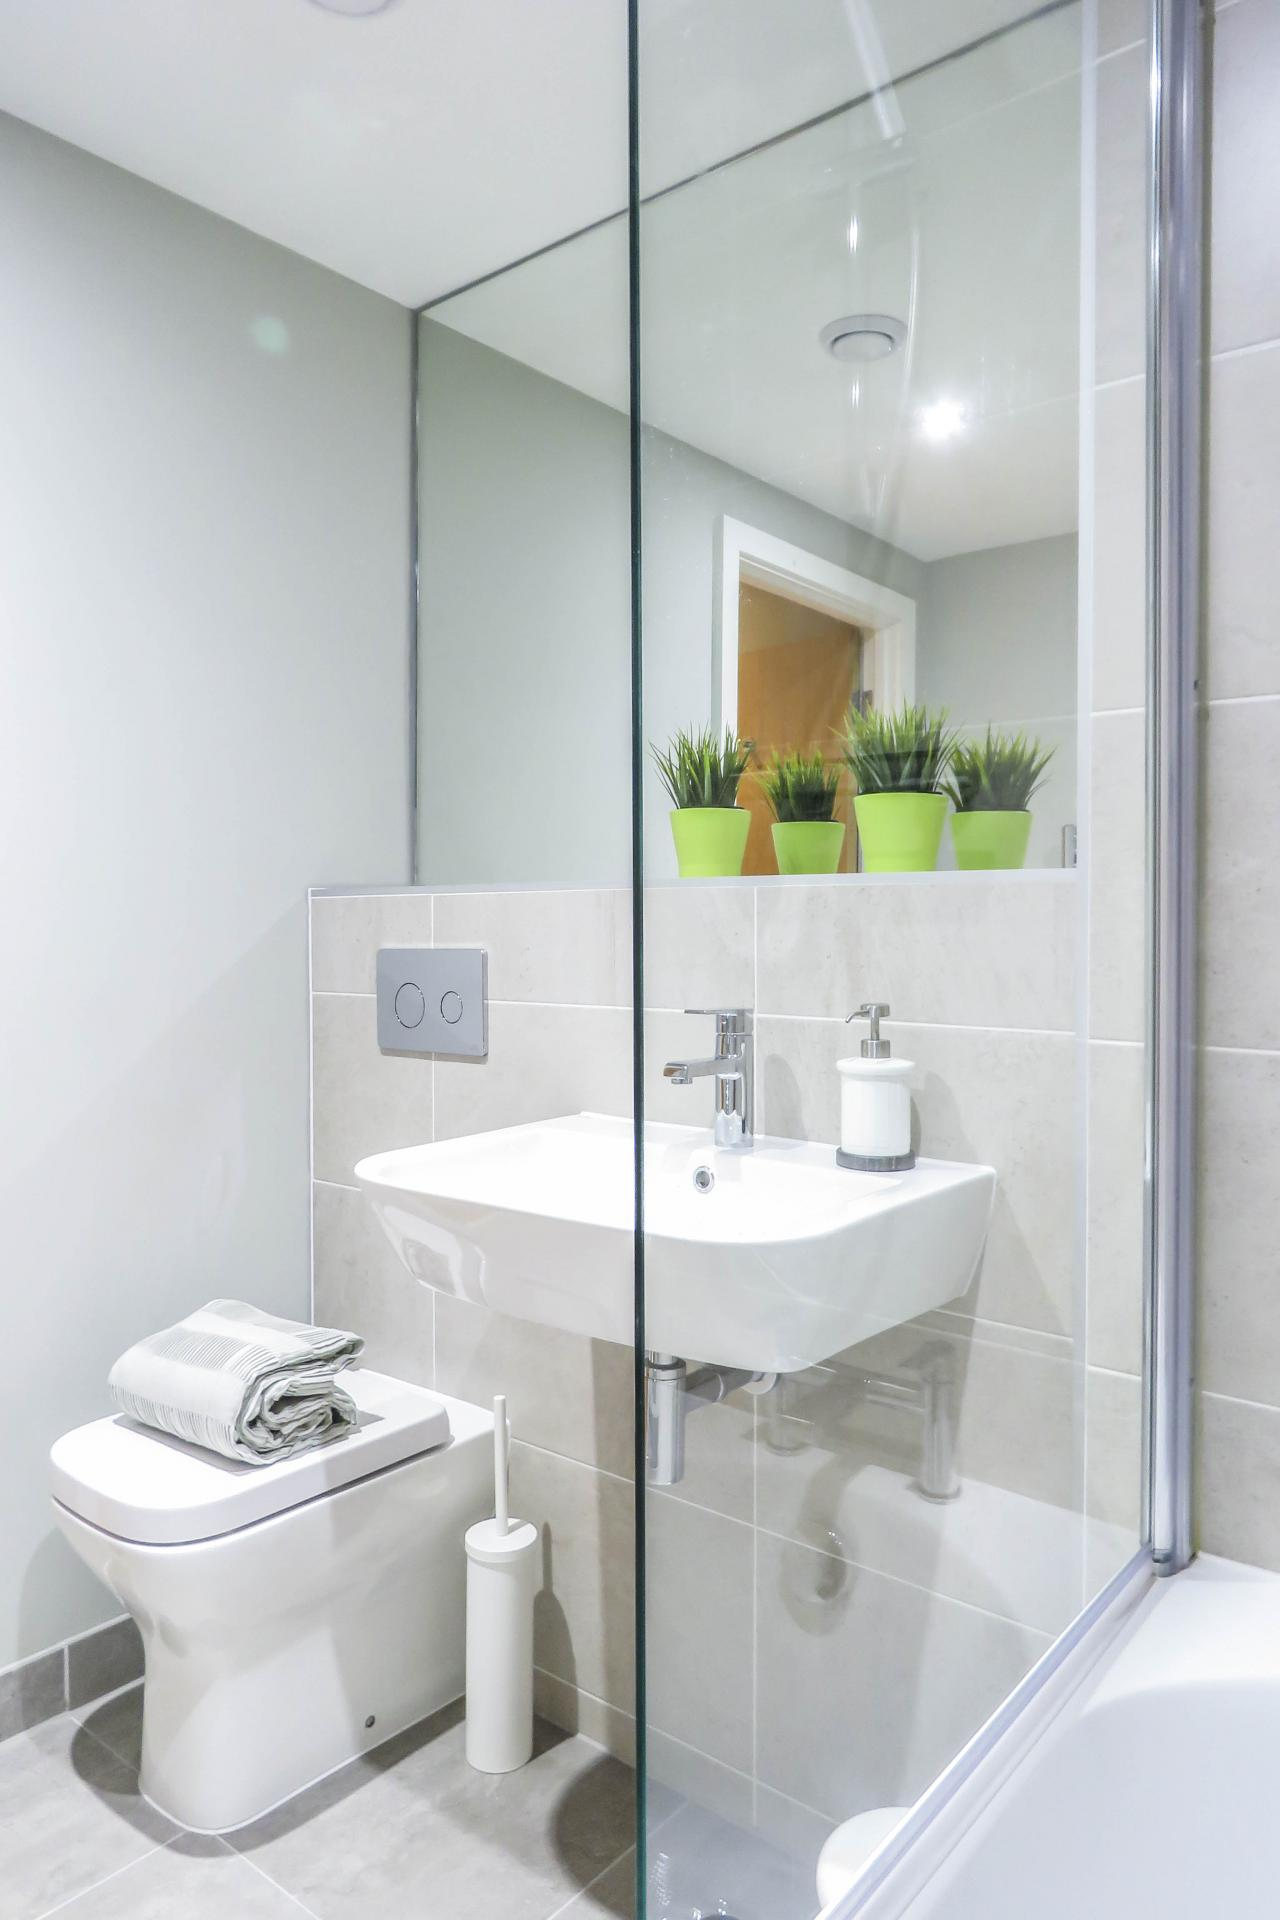 Bathroom at Jewellery Quarter Serviced Apartments